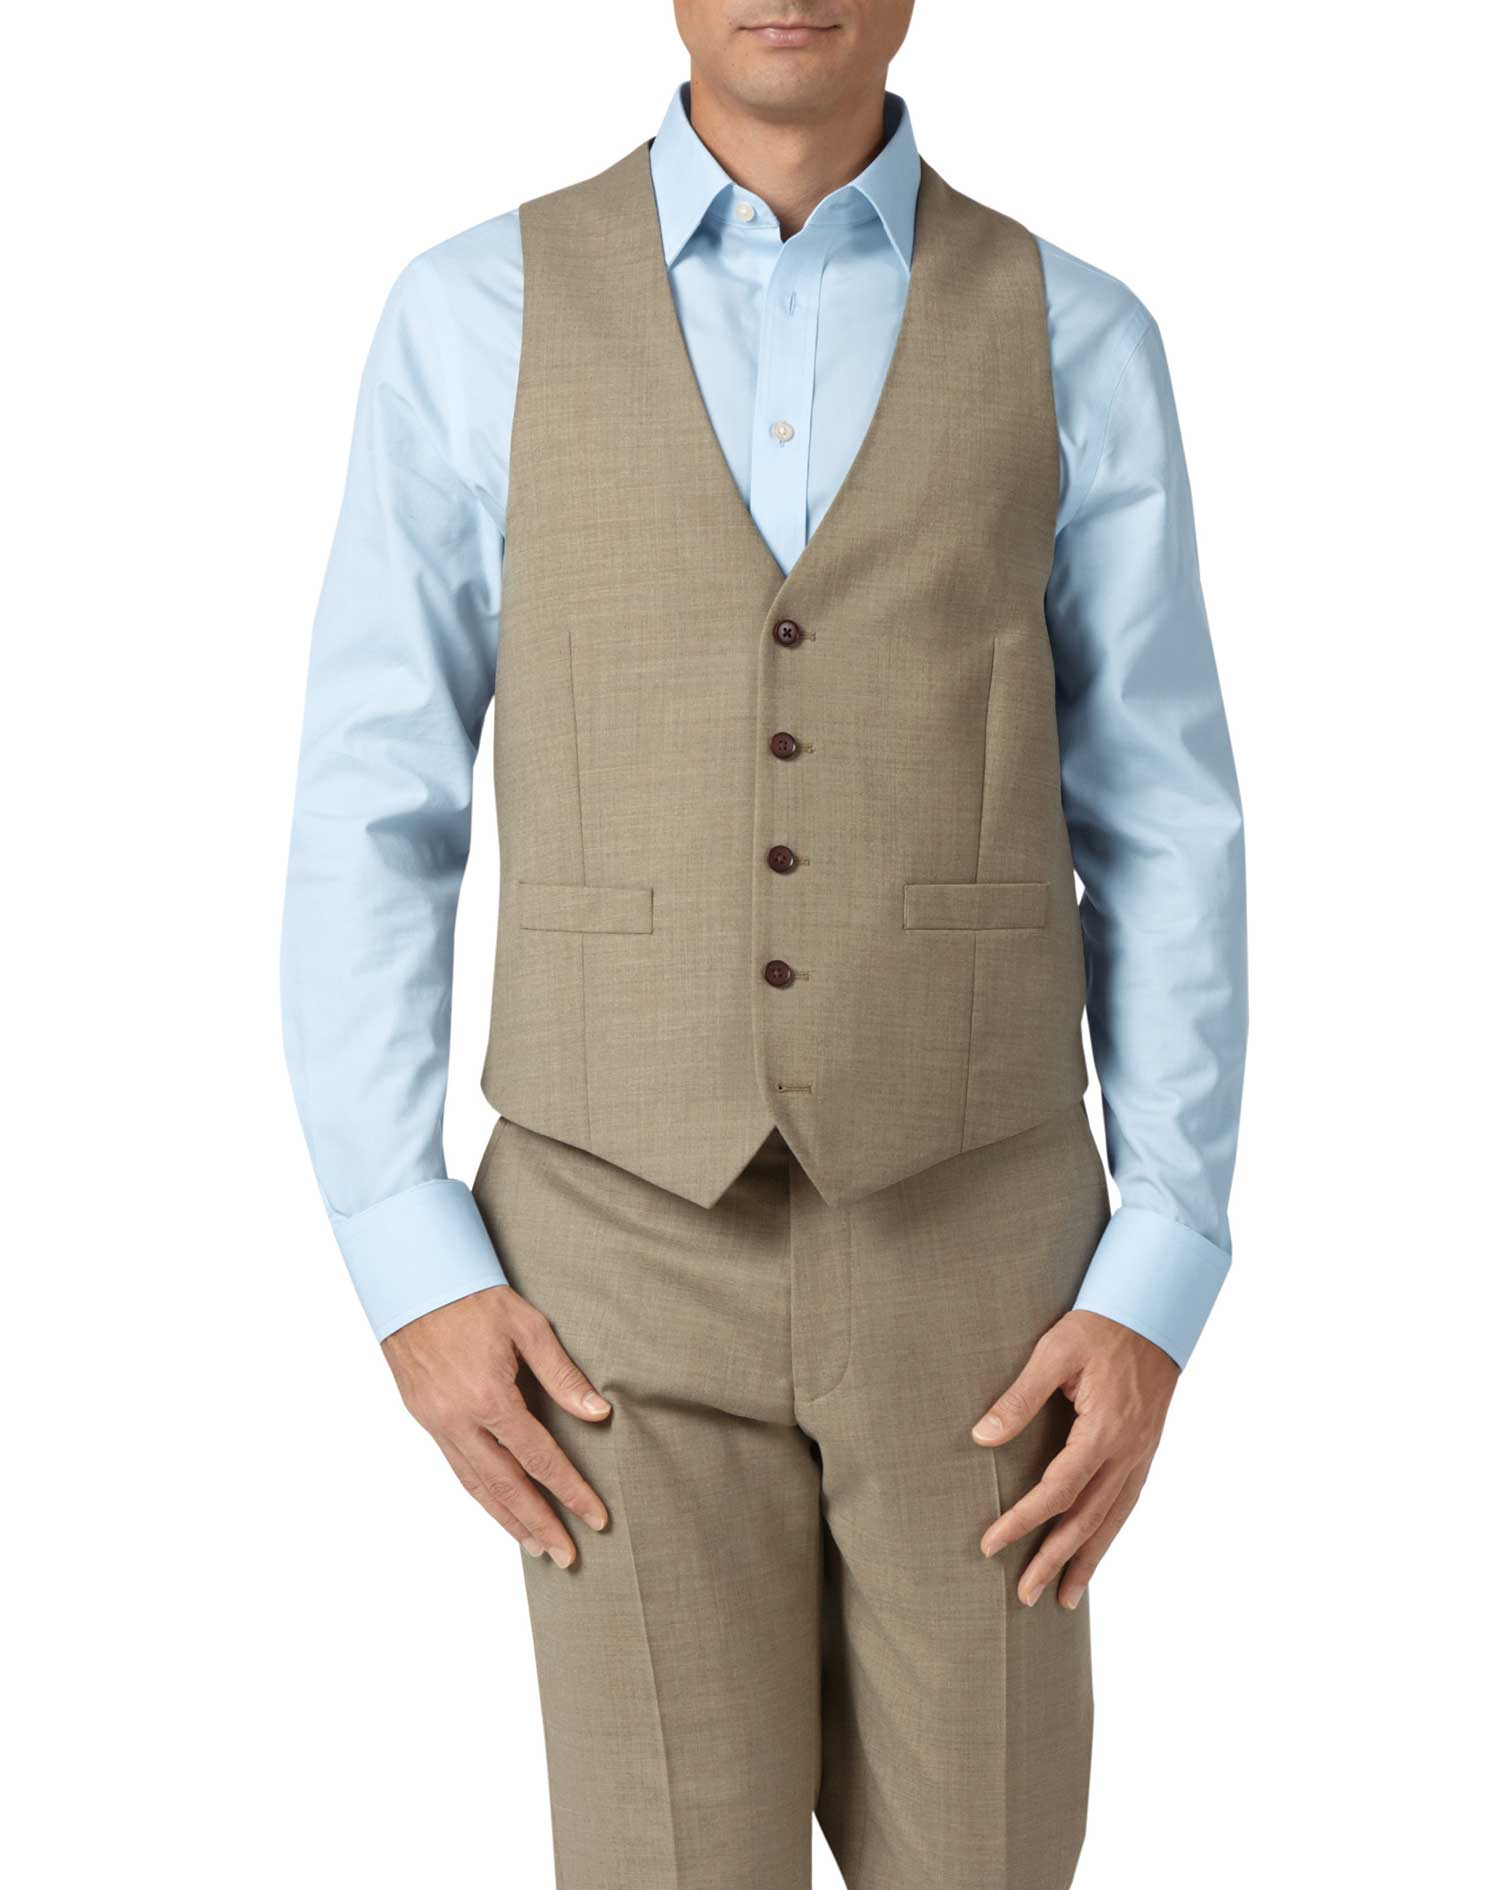 Fawn Adjustable Fit Twill Business Suit Wool Waistcoat Size w44 by Charles Tyrwhitt